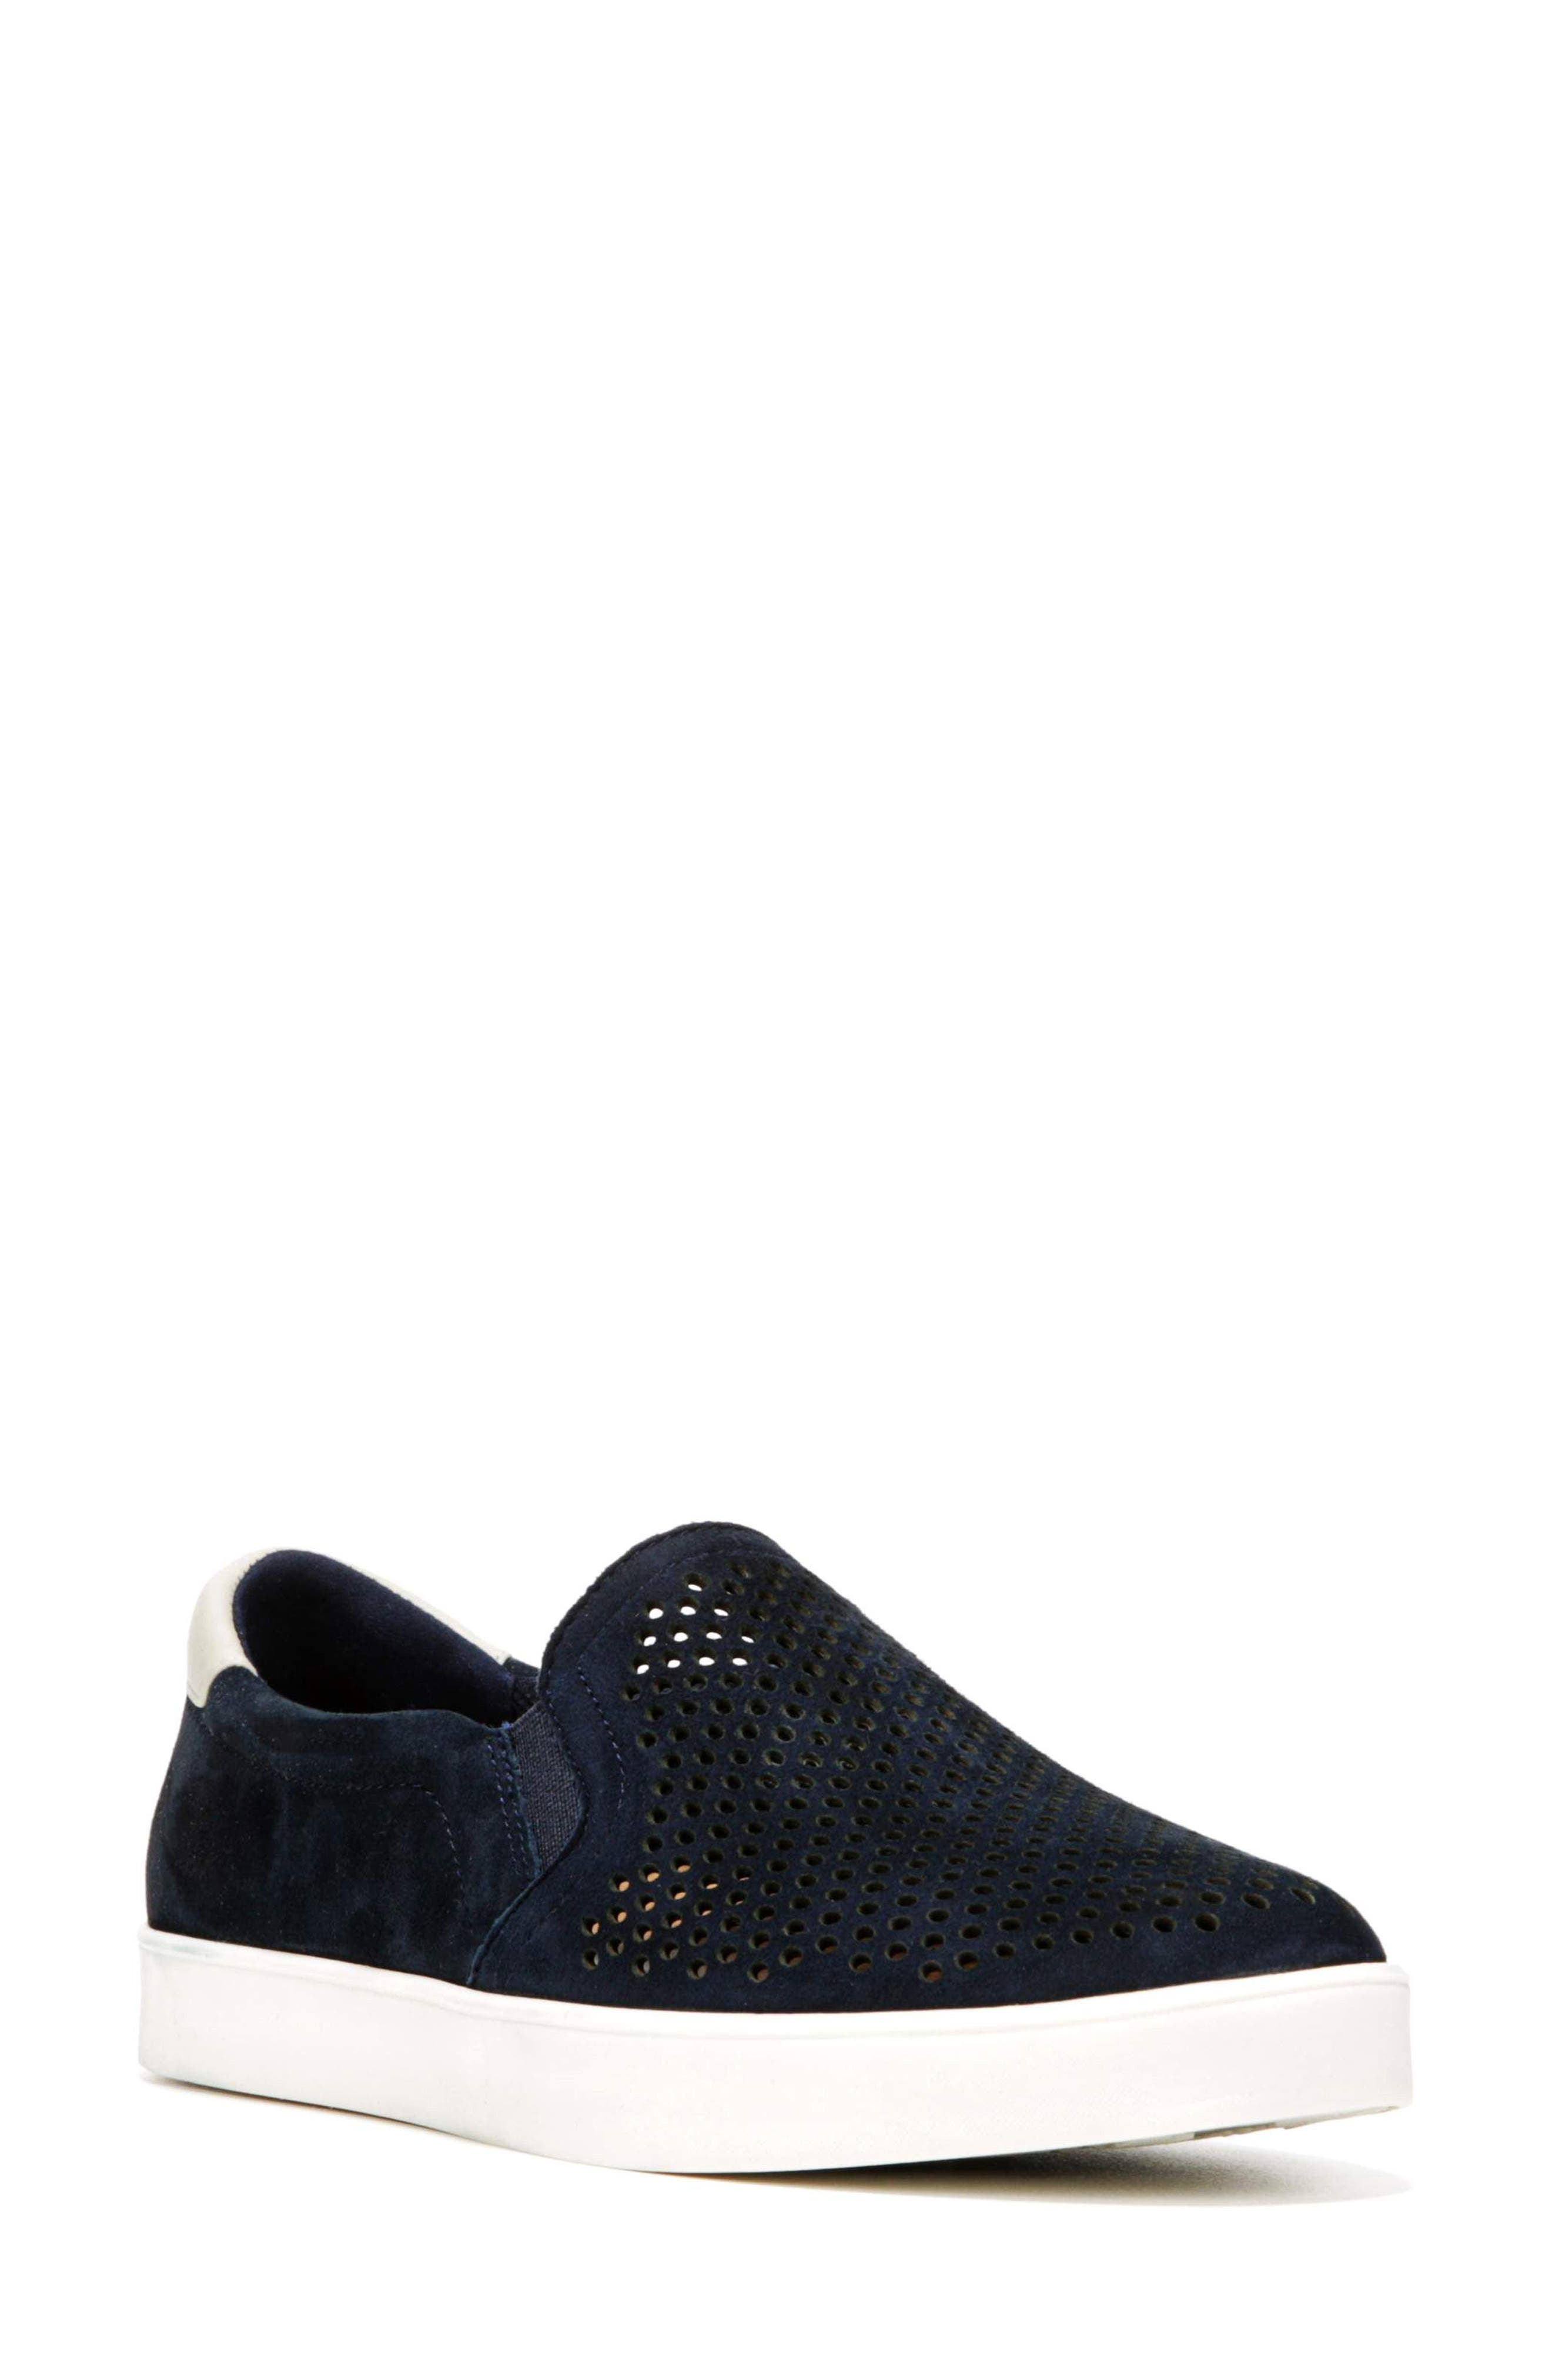 Main Image - Dr. Scholl's Original Collection 'Scout' Slip On Sneaker (Women)